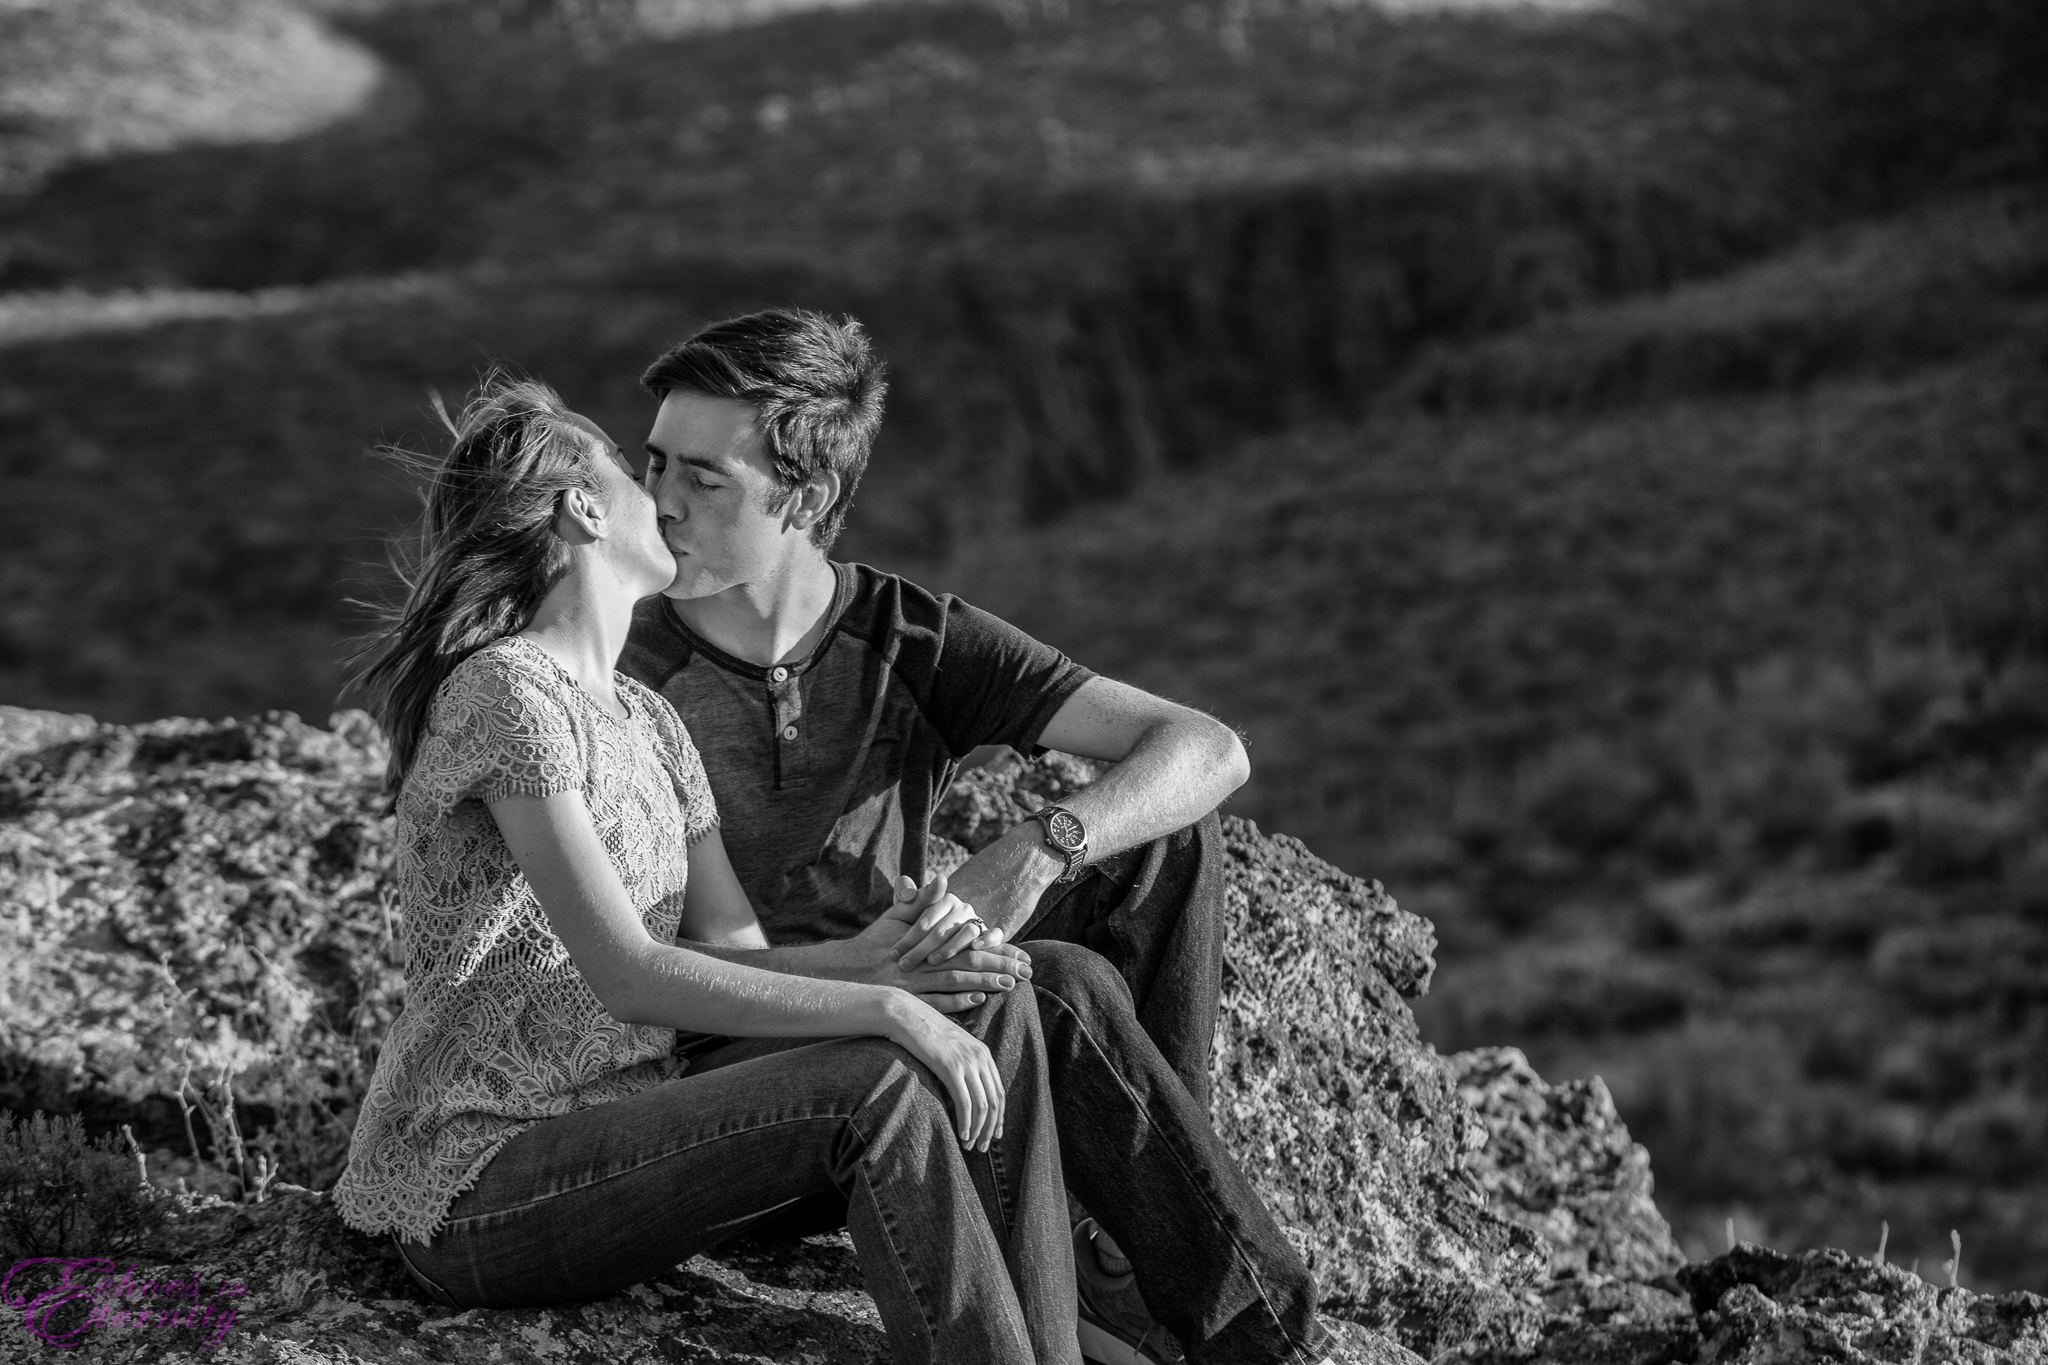 Jeremiah and Hannah Tucson Wedding and Engagement Photographer Sanctuary Cove 07.jpg